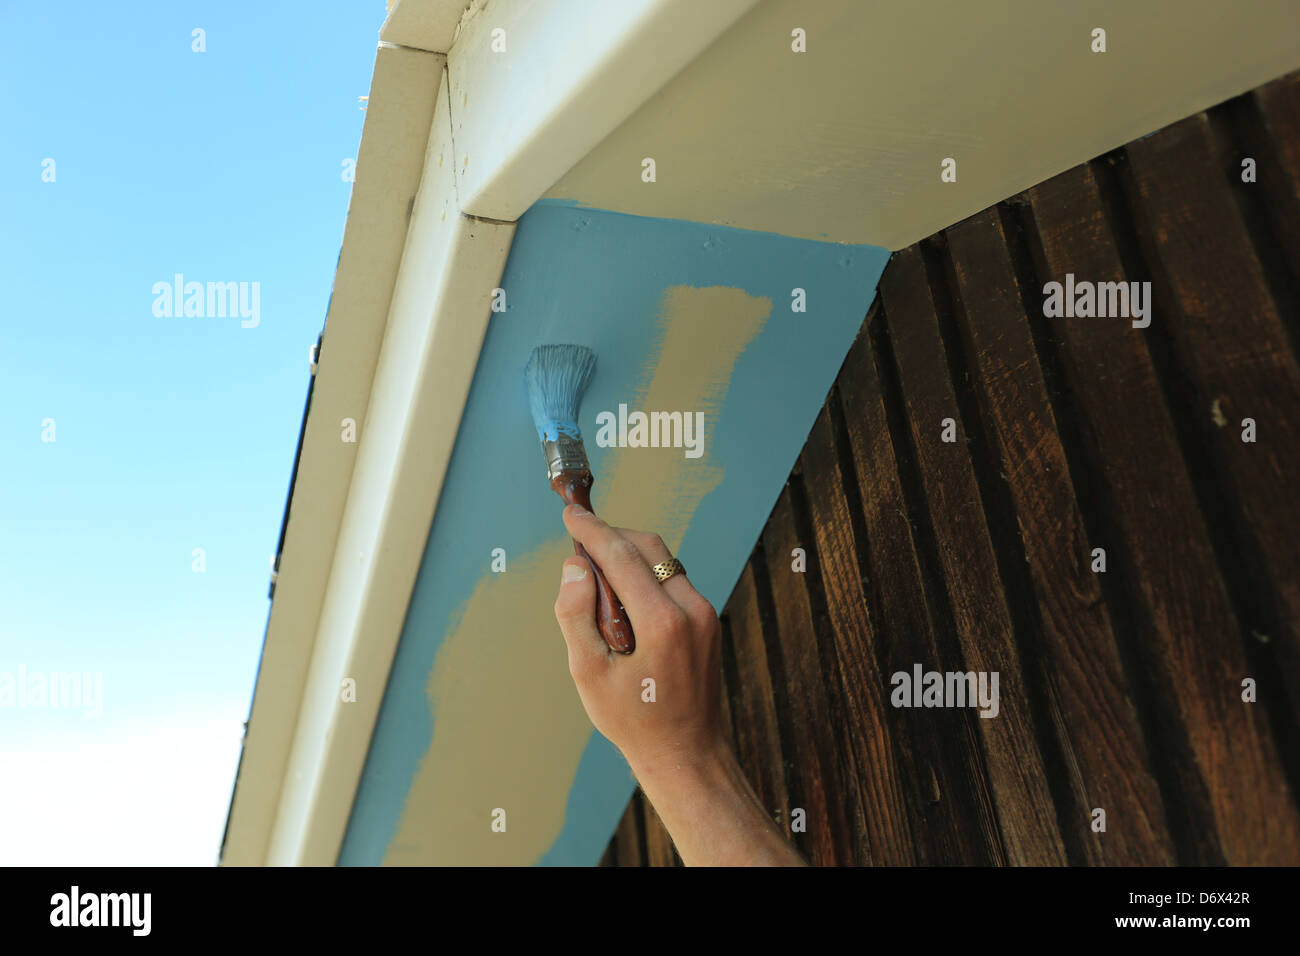 How to paint fascia boards - Painter Painting Roof Fascia Boards